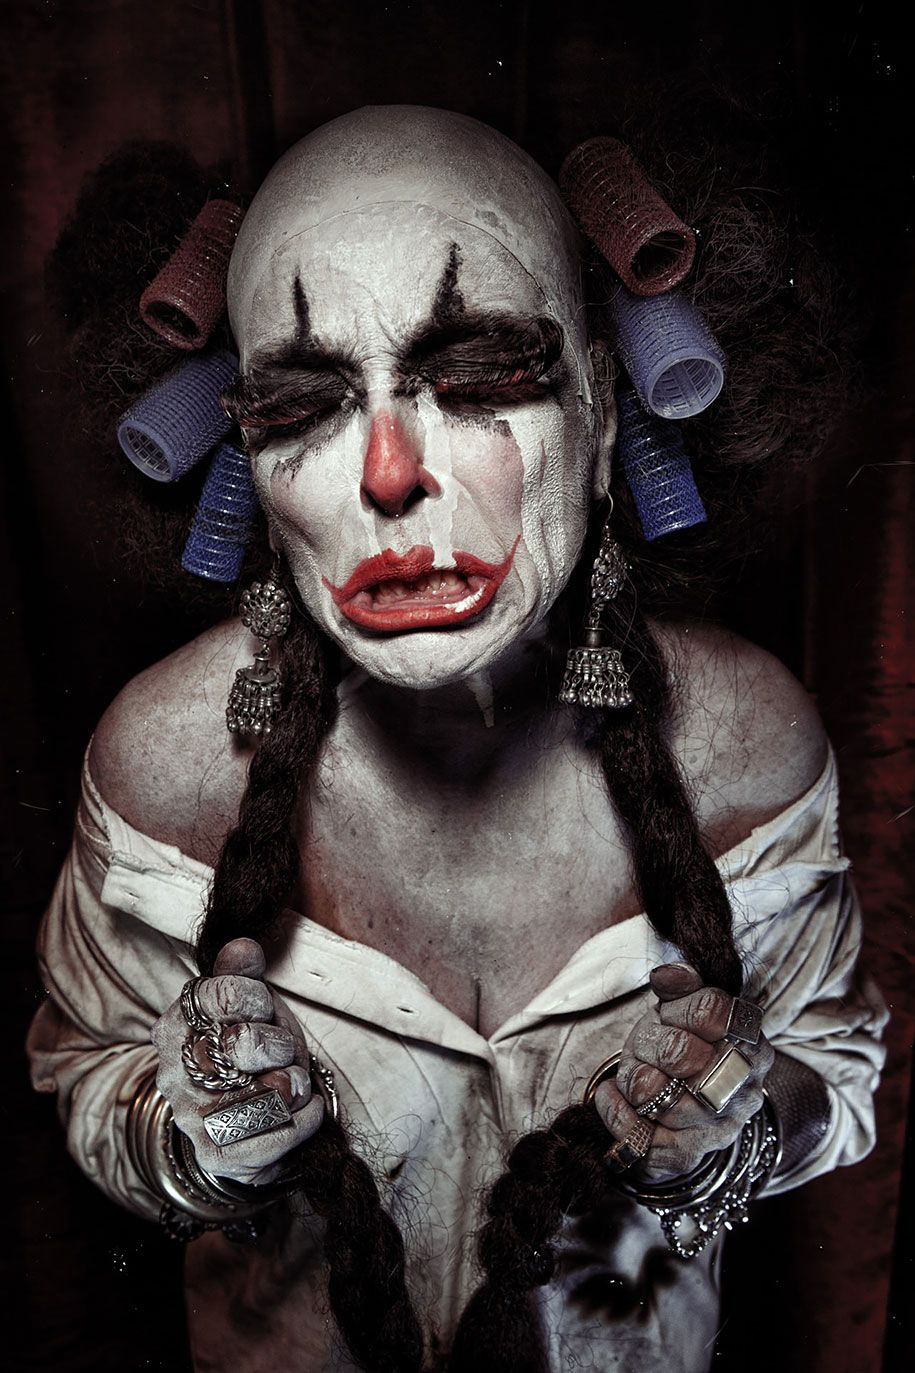 macabre-scary-clown-portraits-clownville-eolo-perfido-21 | art ...